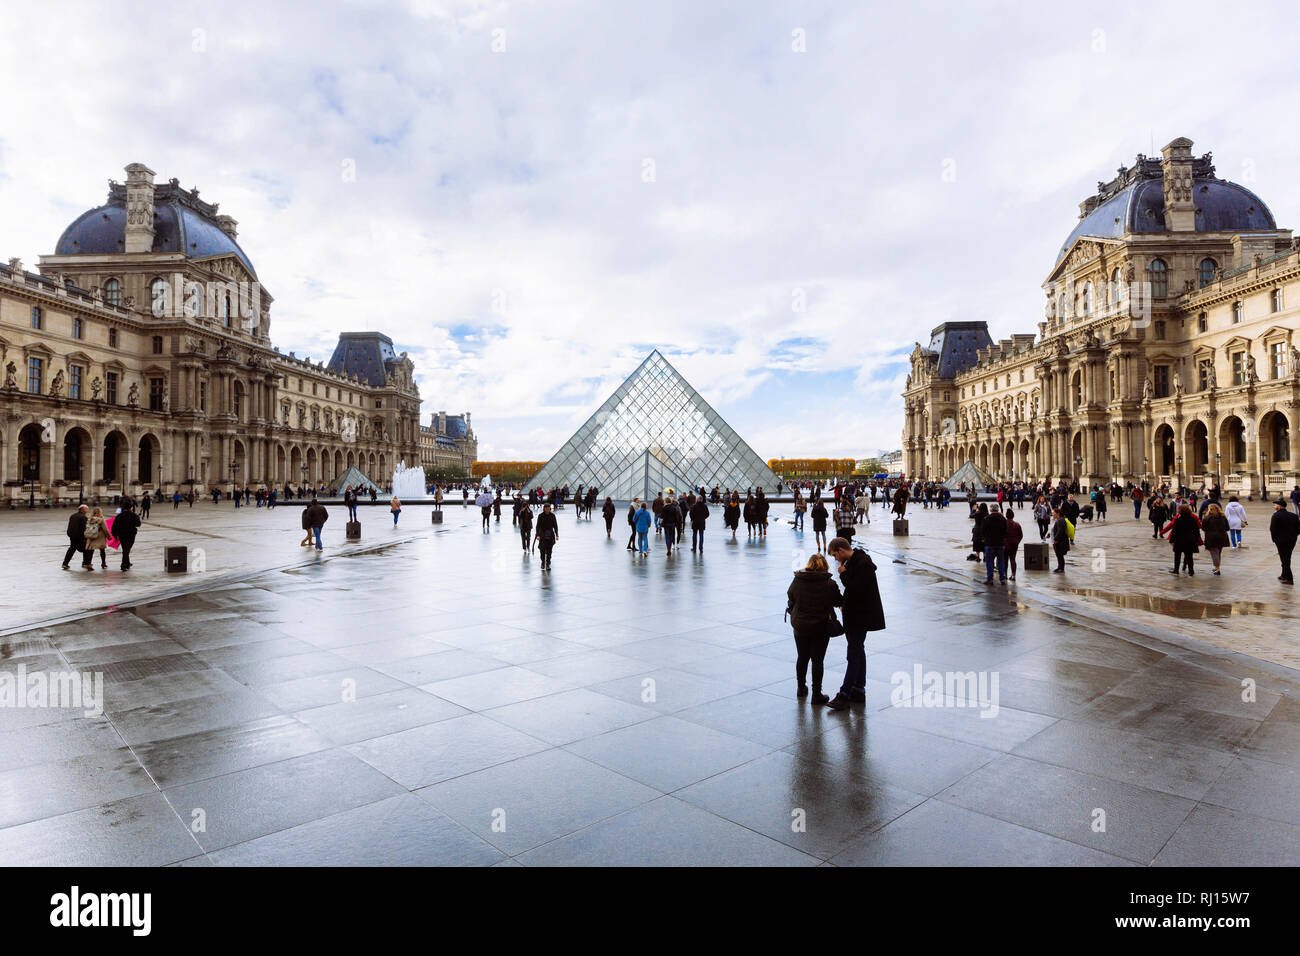 PARIS, FRANCE - NOVEMBER 10, 2018 - View of famous Louvre Museum and Pyramid in a winter and rainy day. Louvre Museum is one of the largest and most v Stock Photo